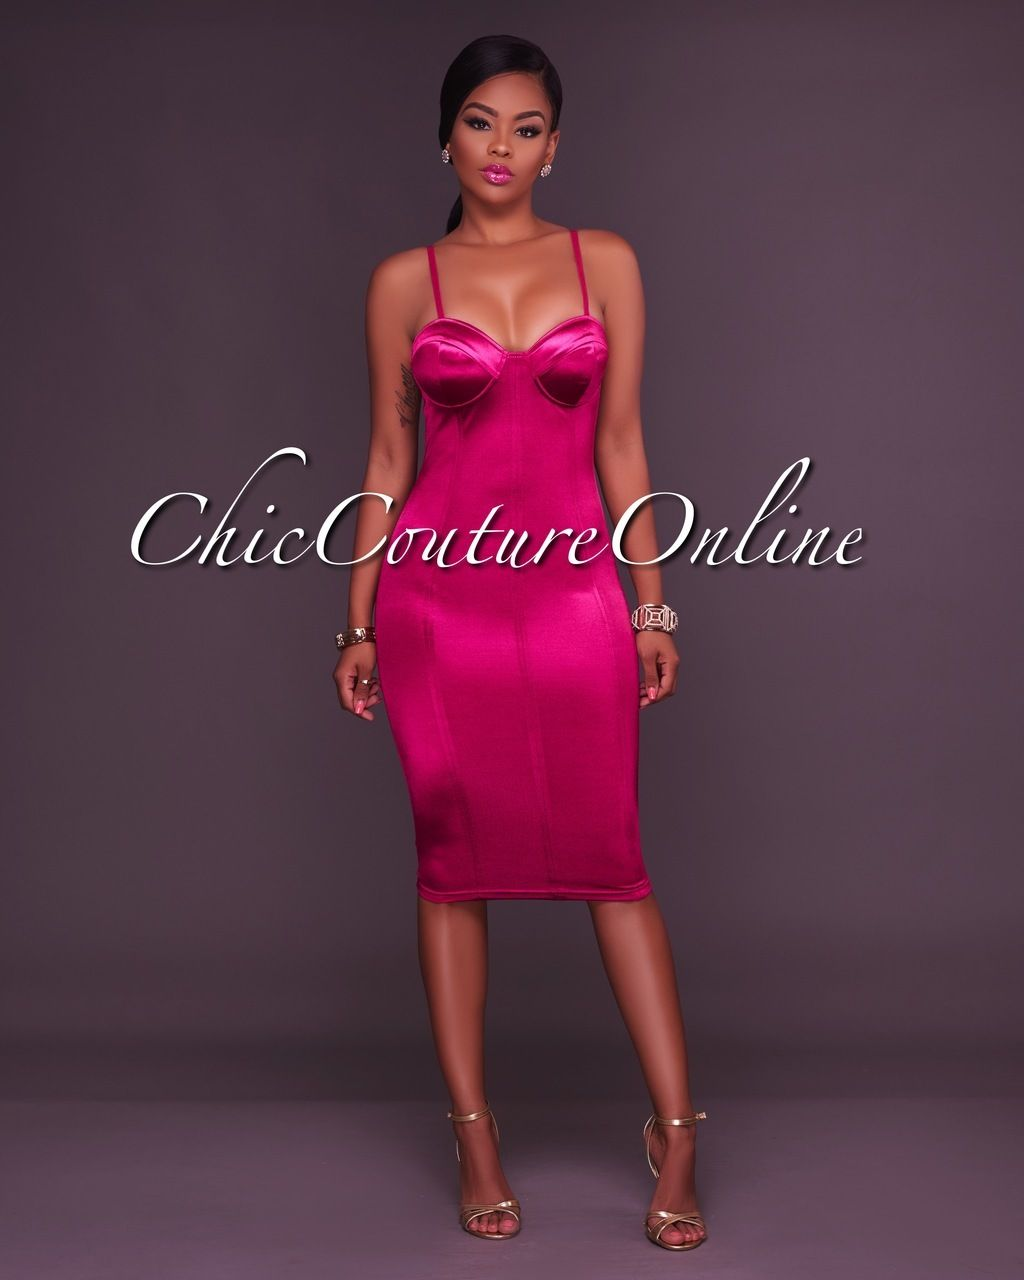 fdfc4b0390cf Chic Couture Online - Chantel Magenta Satin Bustier Padded Dress, (http://